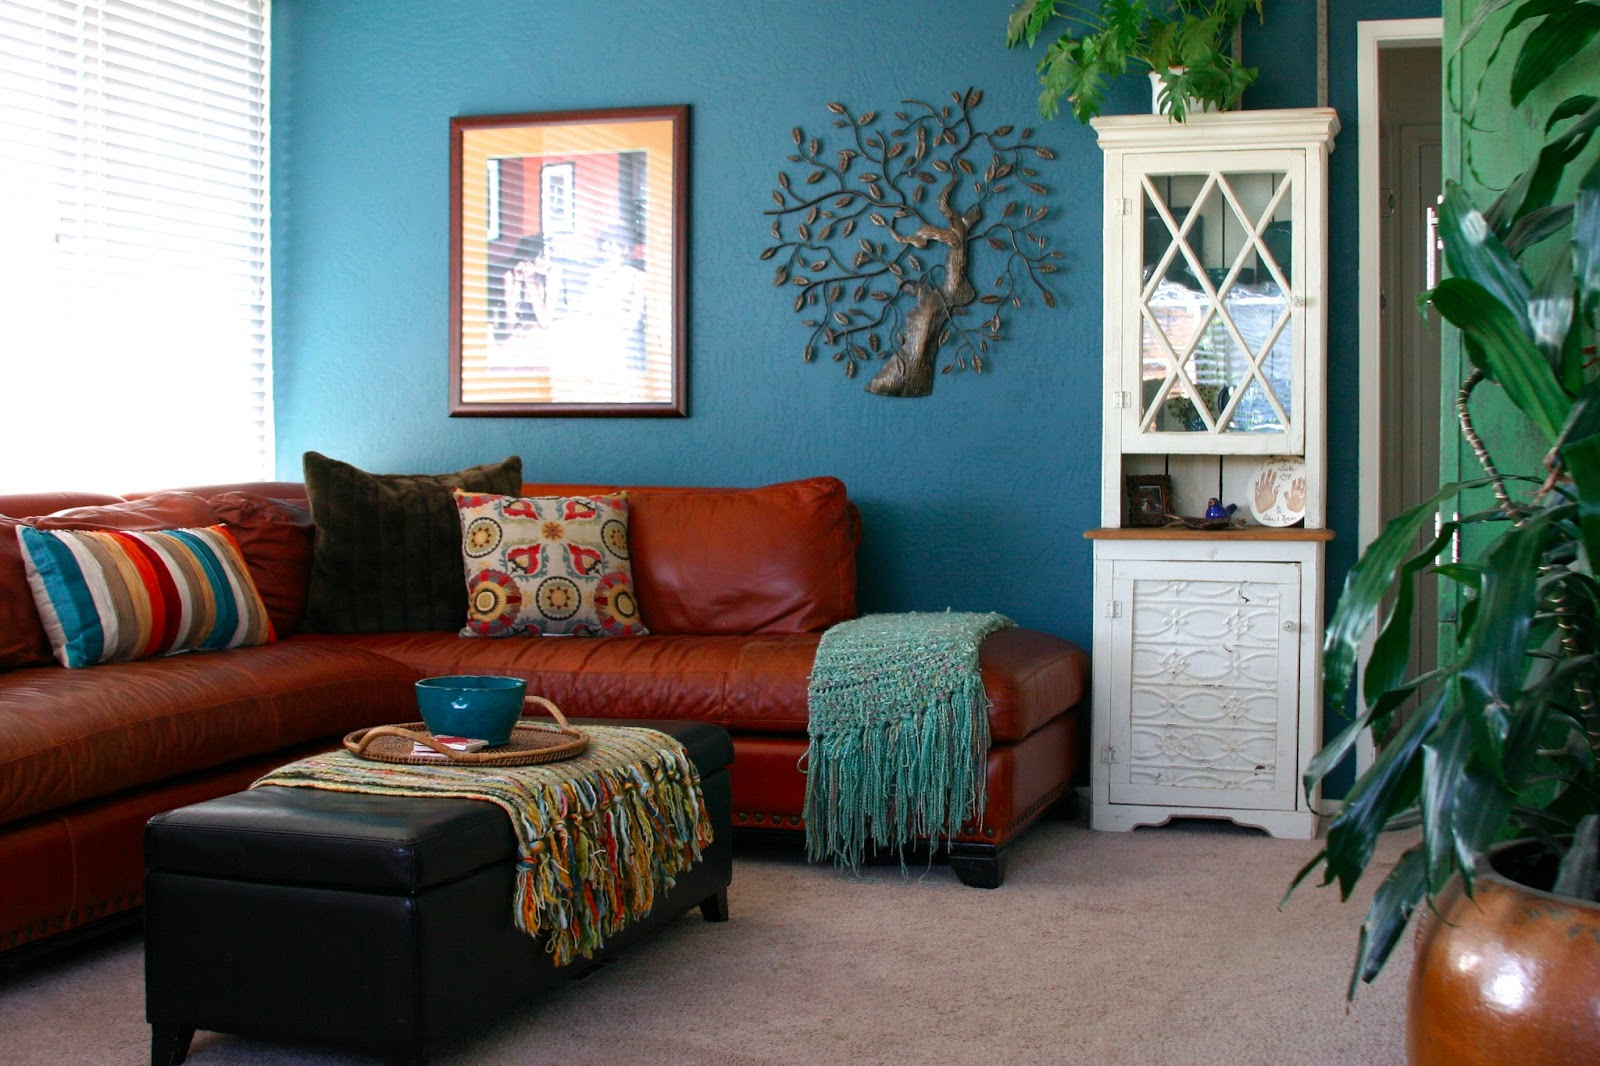 back bay pottery: my boho beach house - eclectic home decor